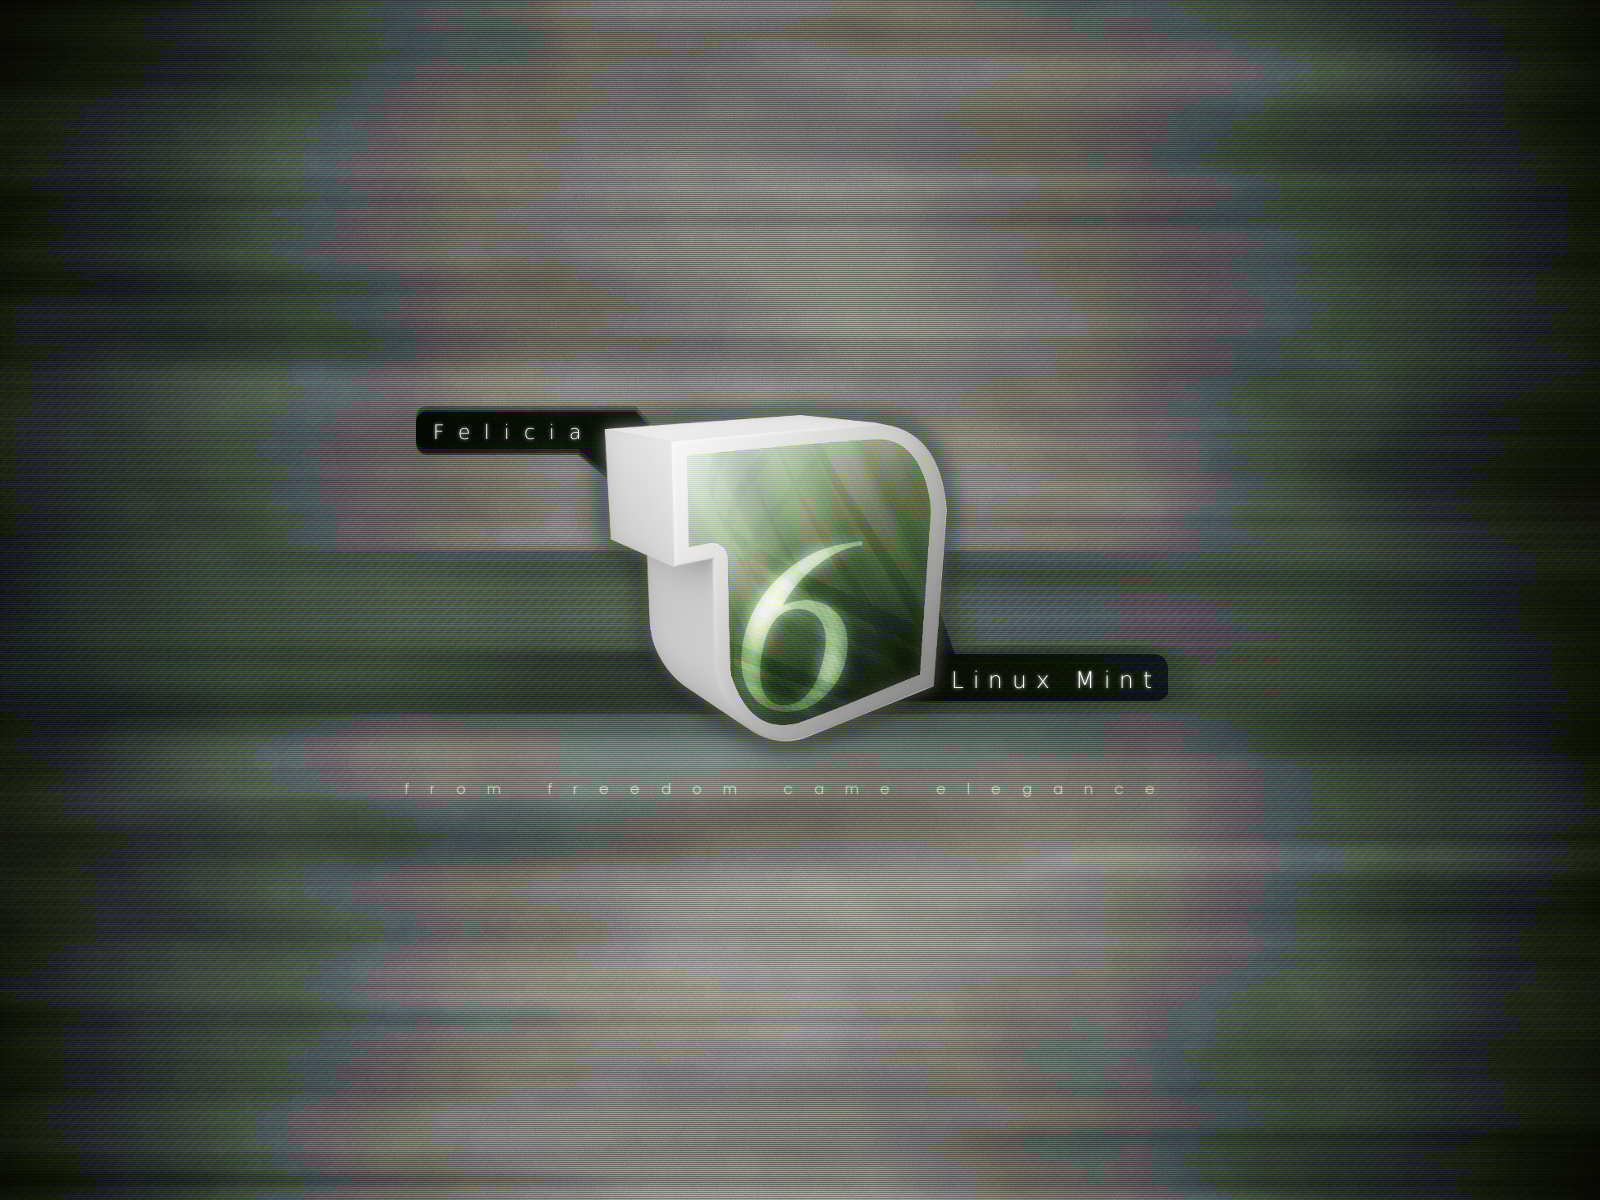 Linux Mint 6 Concept by adriannvl